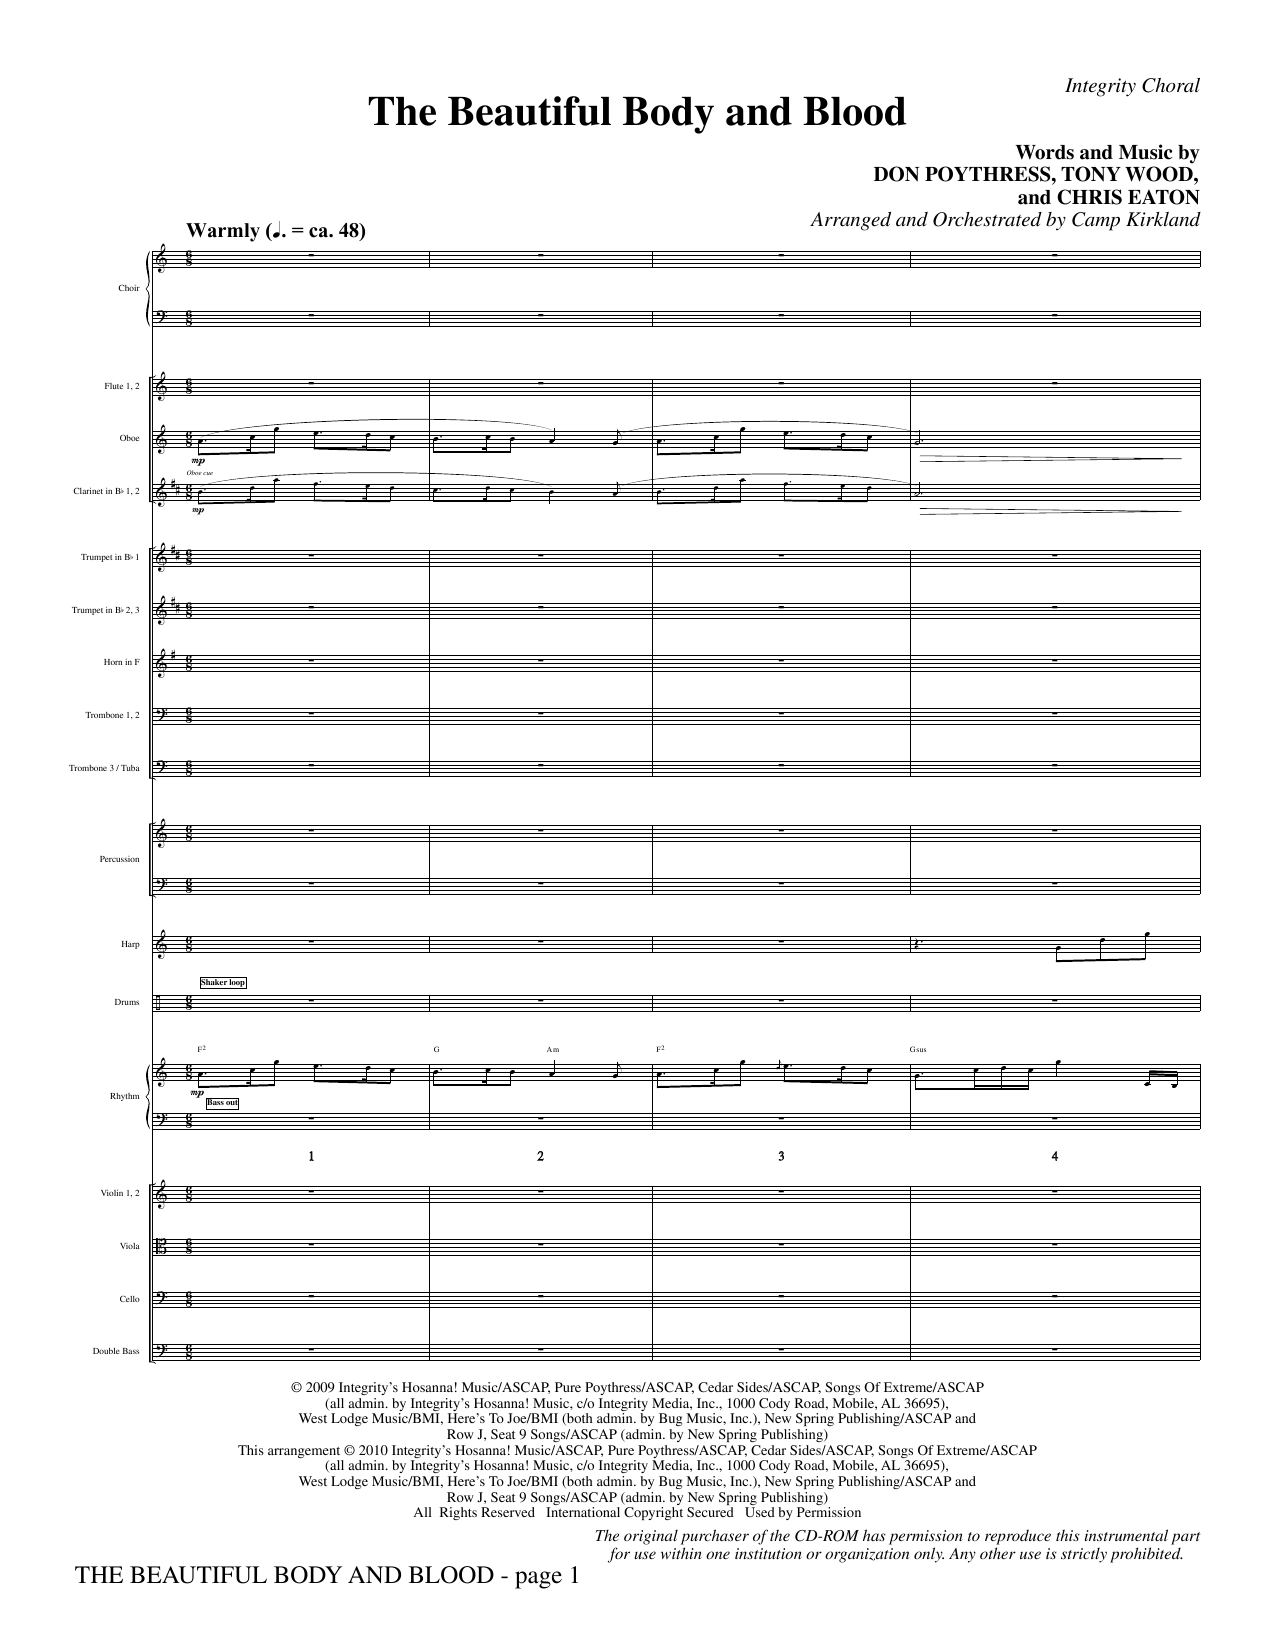 The Beautiful Body And Blood (complete set of parts) sheet music for orchestra/band (Orchestra) by Camp Kirkland, Chris Eaton, Don Poythress and Tony Wood. Score Image Preview.